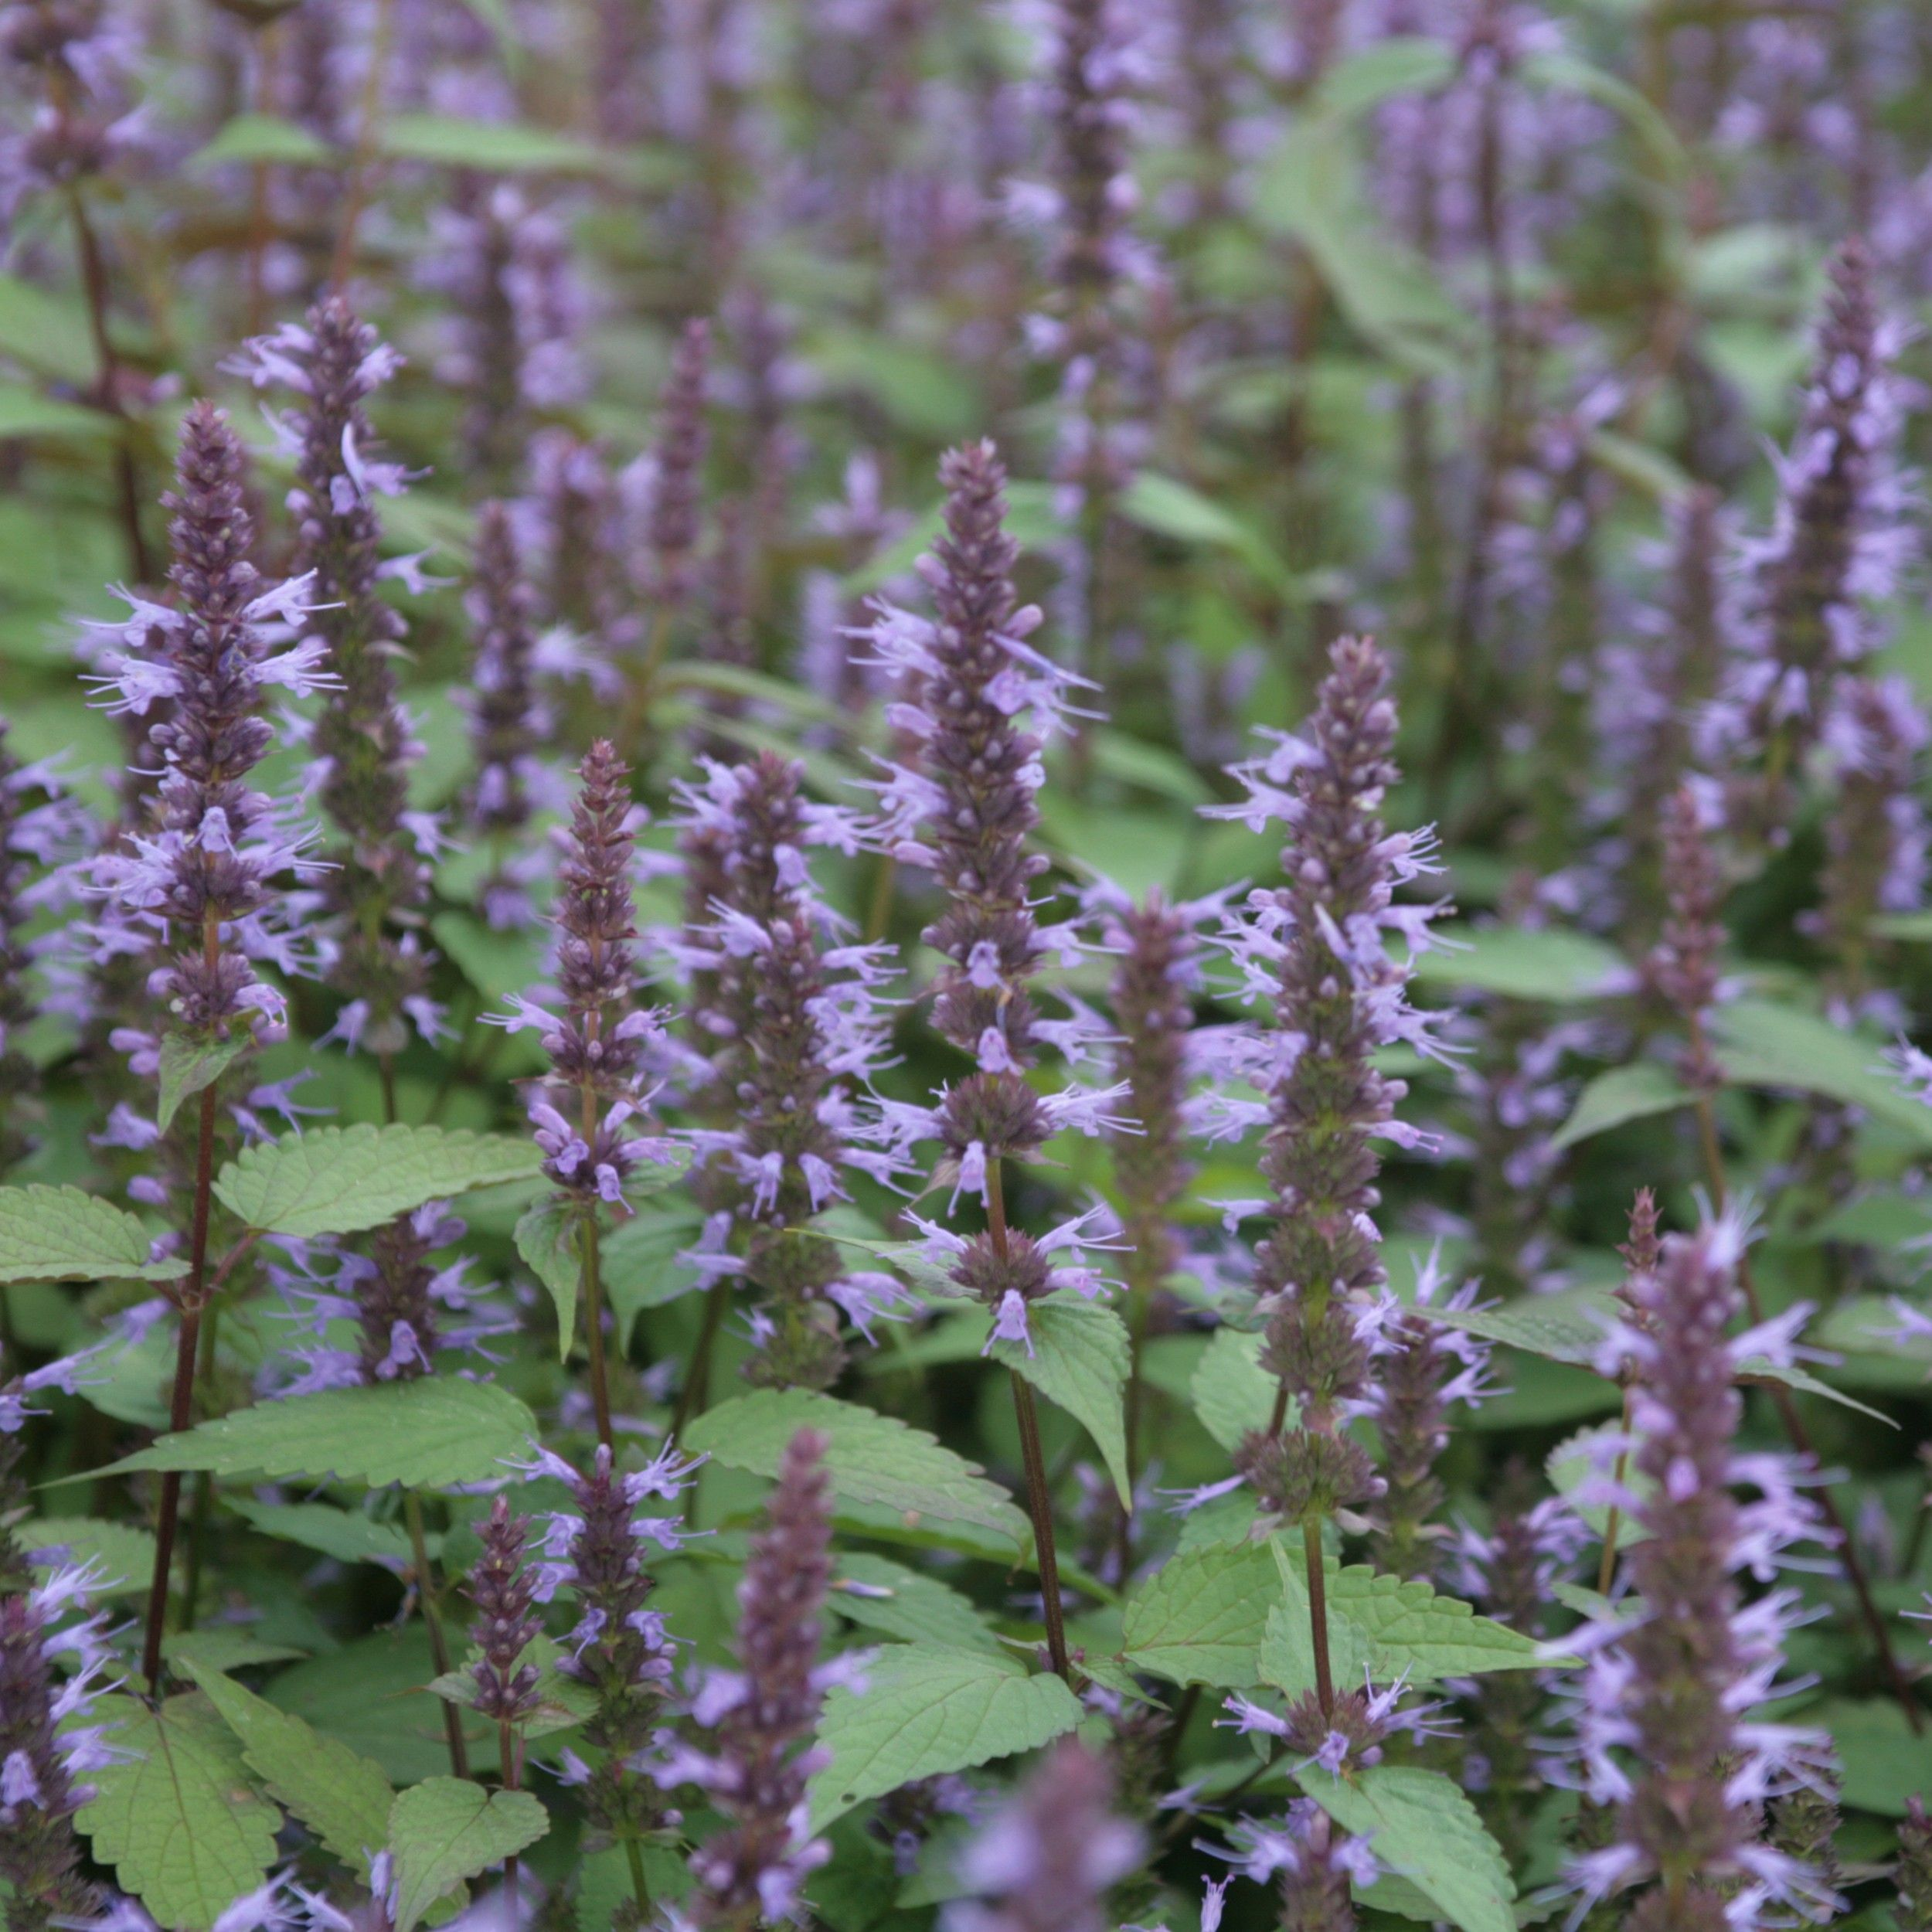 Agastache After Eight - Agastache rugueuse